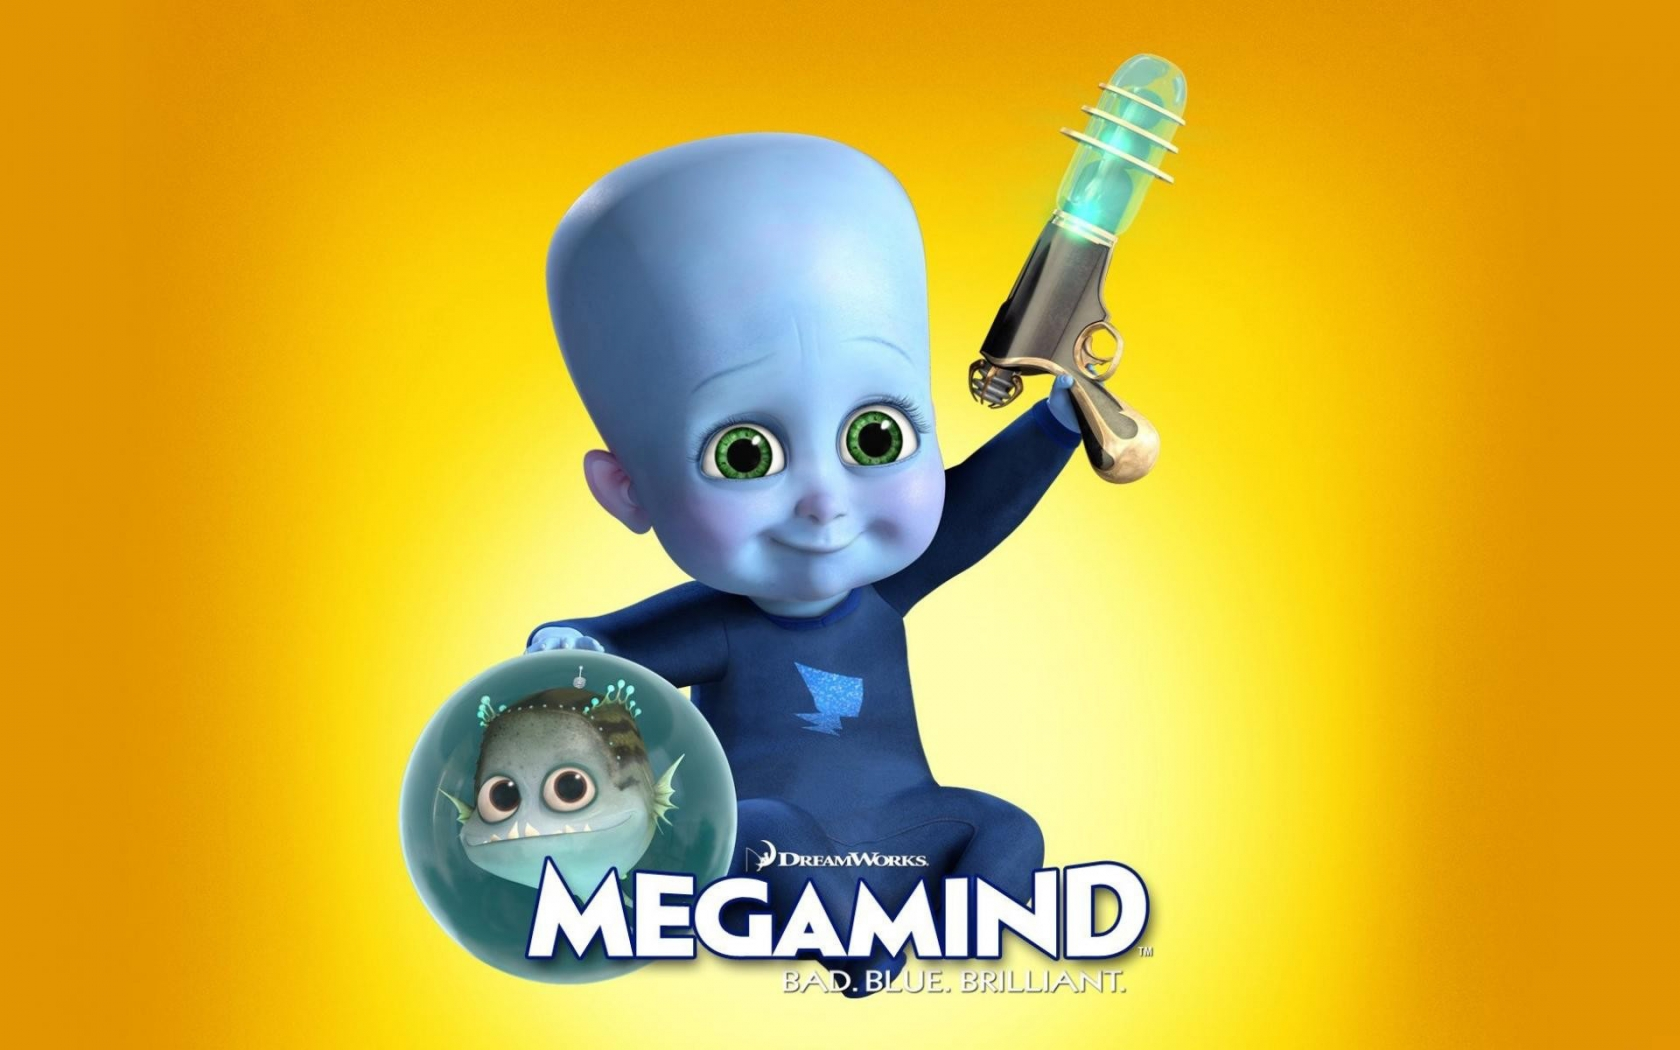 Megamind Child for 1680 x 1050 widescreen resolution